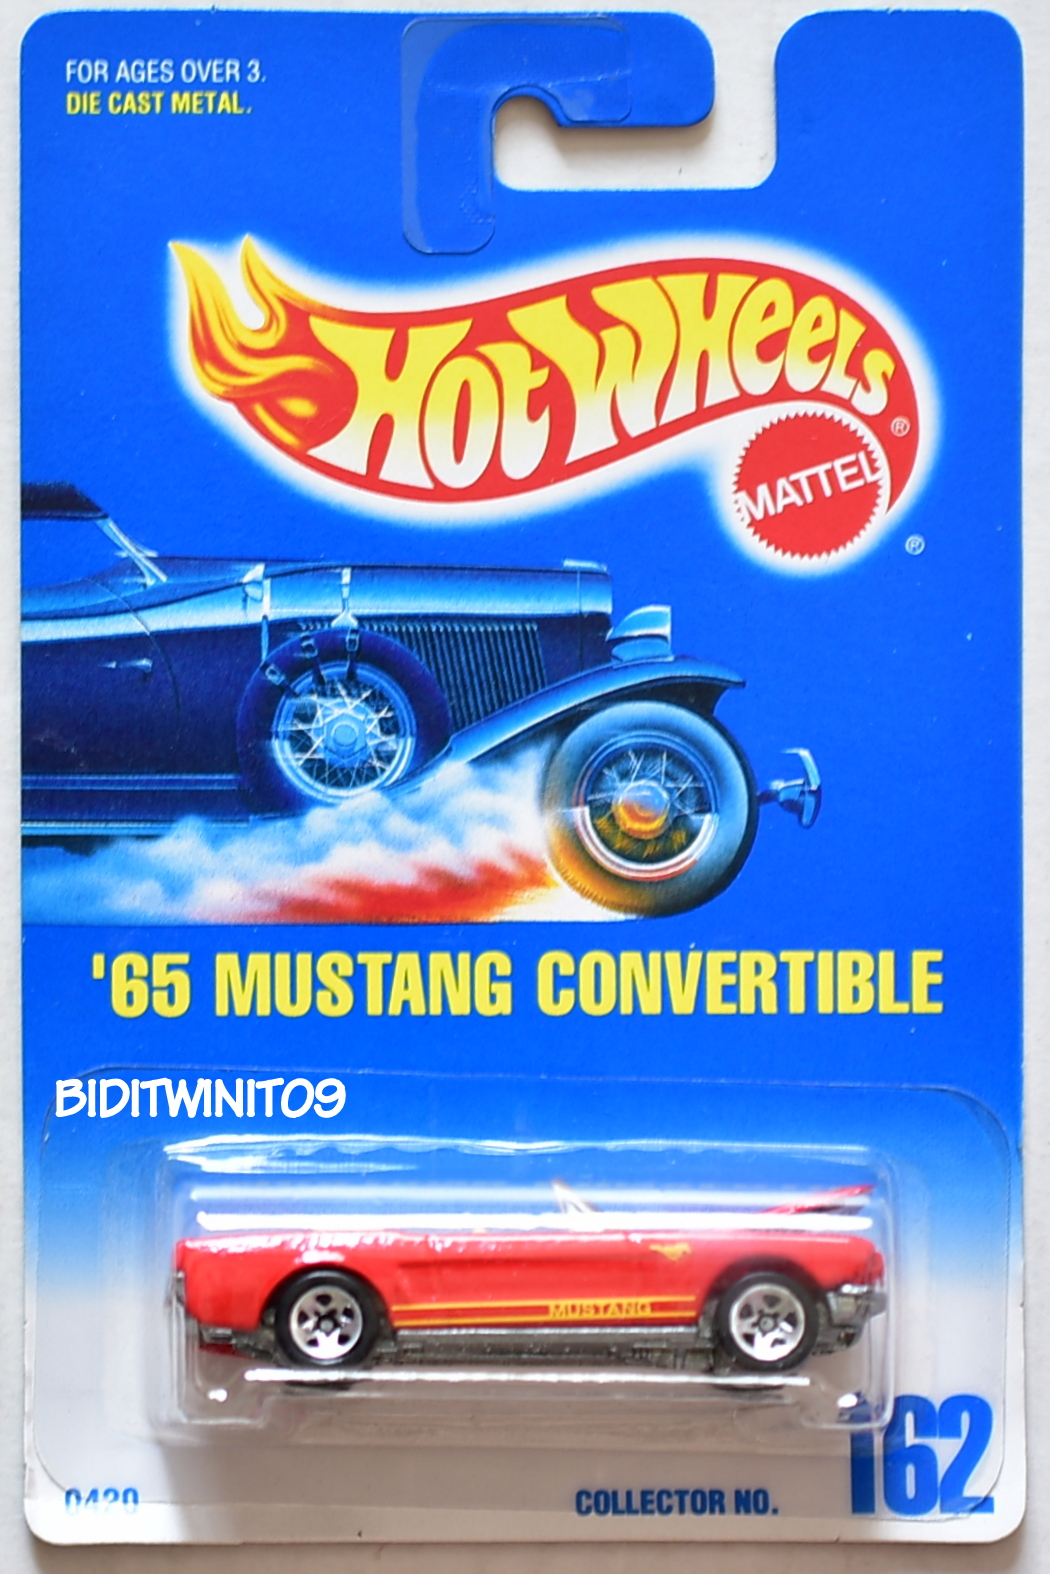 HOT WHEELS 1991 BLUE CARD '65 MUSTANG CONVERTIBLE #162 ORANGE W/ 5 SP WHEELS 15